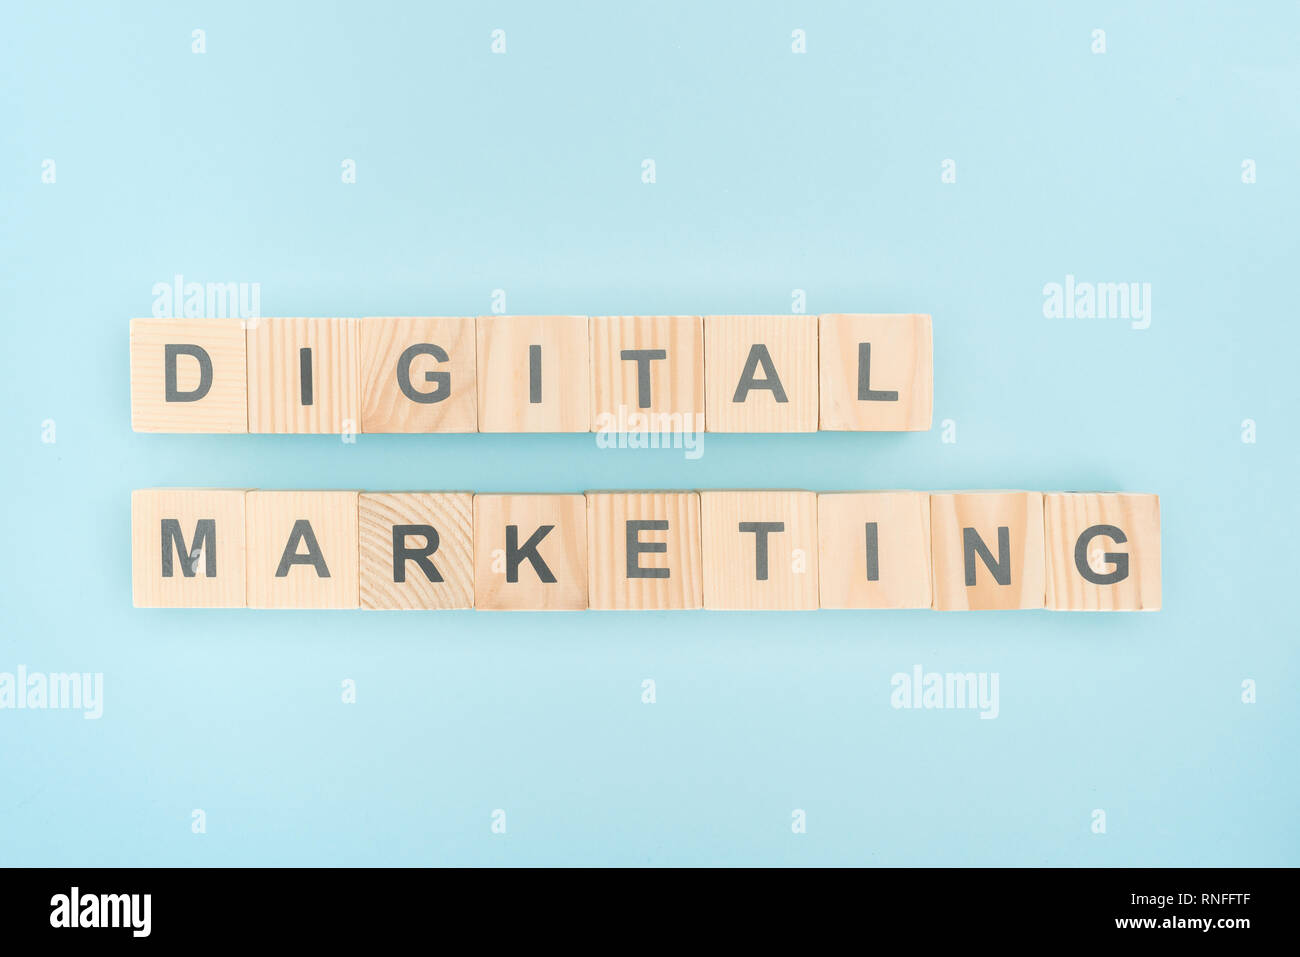 top view of digital marketing lettering made of wooden cubes on blue background - Stock Image